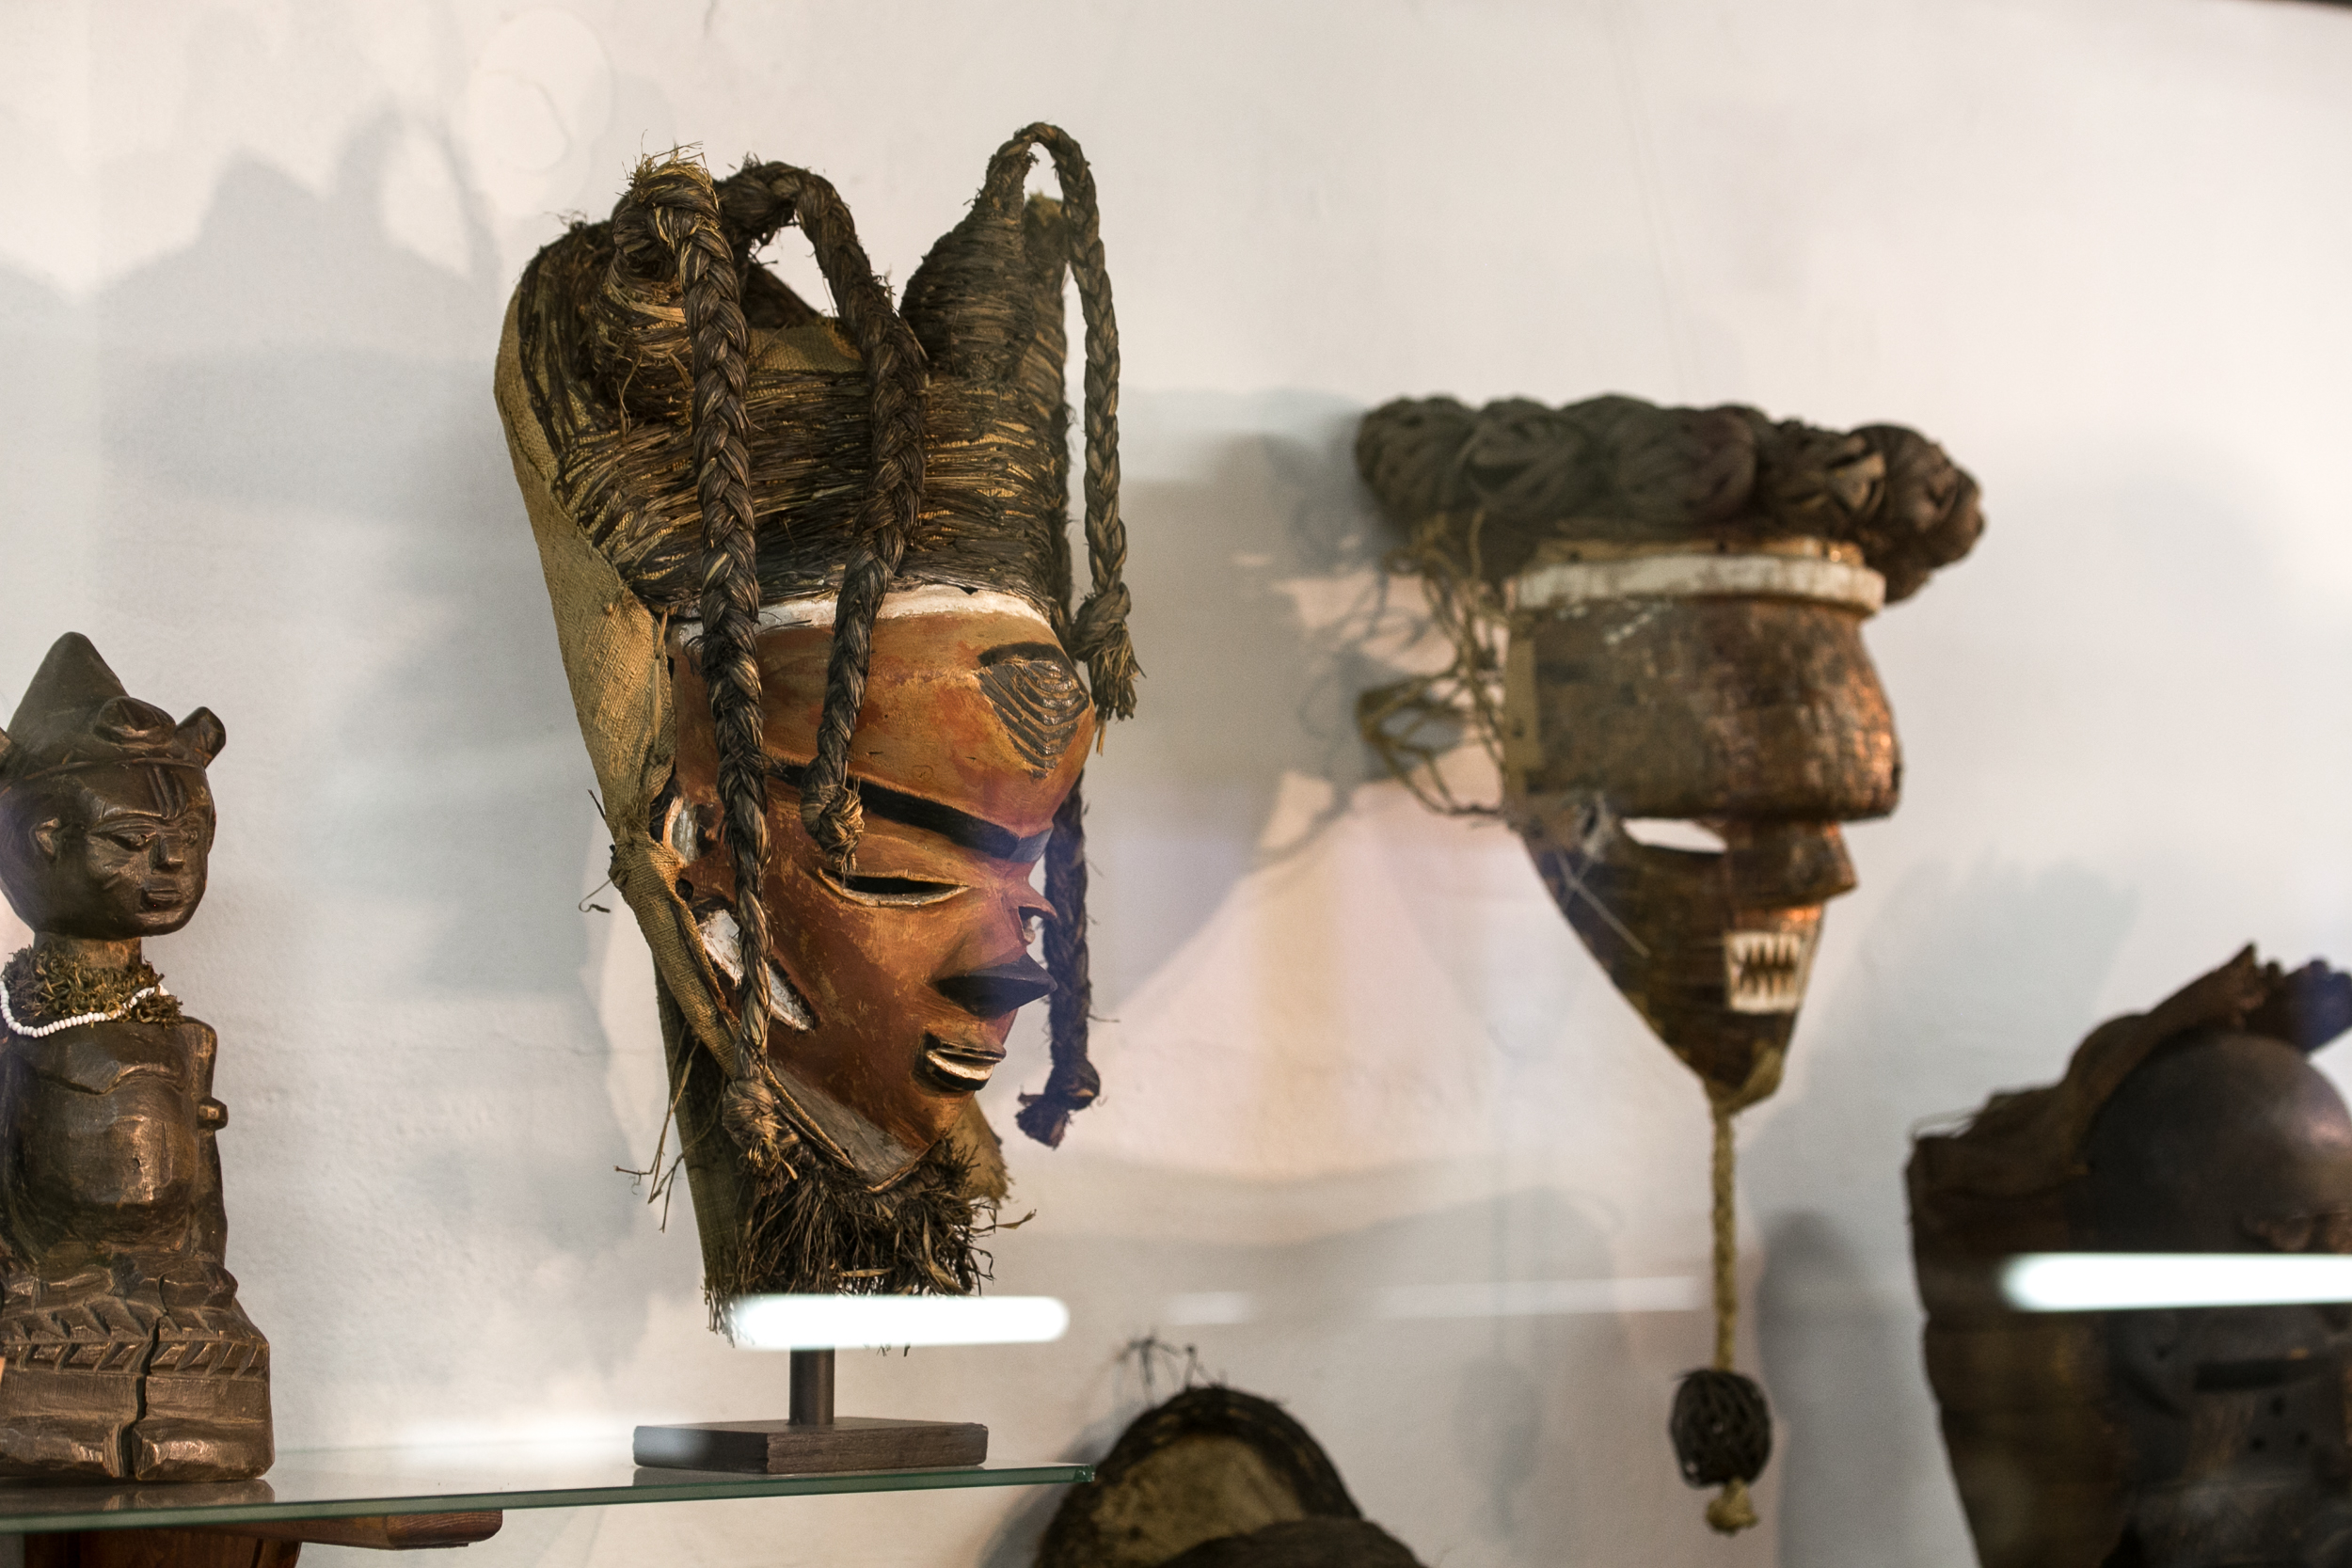 musee-africain-namur-belgique-art-africain-galerie-lz-arts-collection-masques-statues-congo-5.jpg